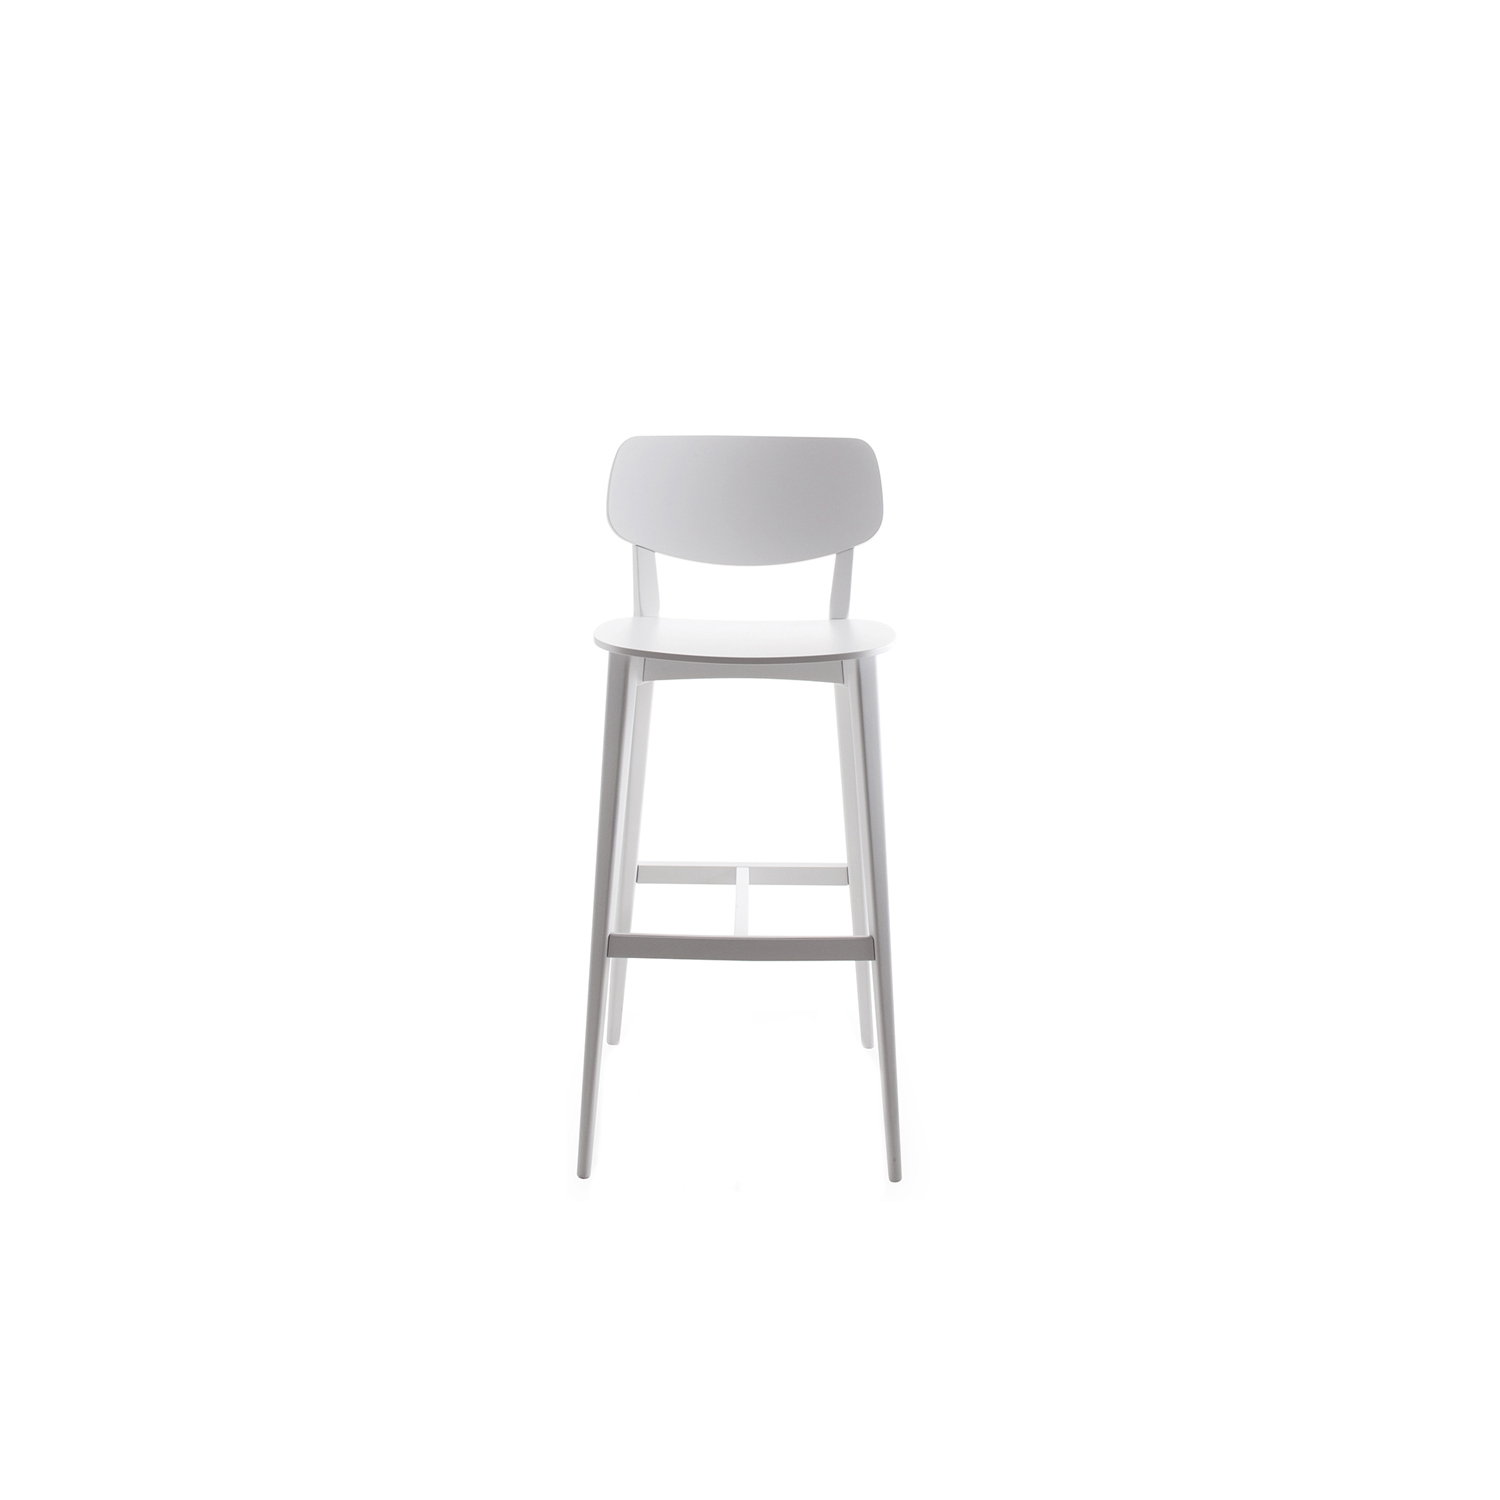 Doll Barstool - Barstools with frame in stained or lacquered beechwood or in lacquered steel, available also with upholstered back and seat. A collection of dollies, as the name suggests. A complete range of chairs, armchairs, lounge chair, barstool and table, with alluringly sweet lines. The Doll's sleek lines become even more embracing in the enveloping lounge versions.  | Matter of Stuff